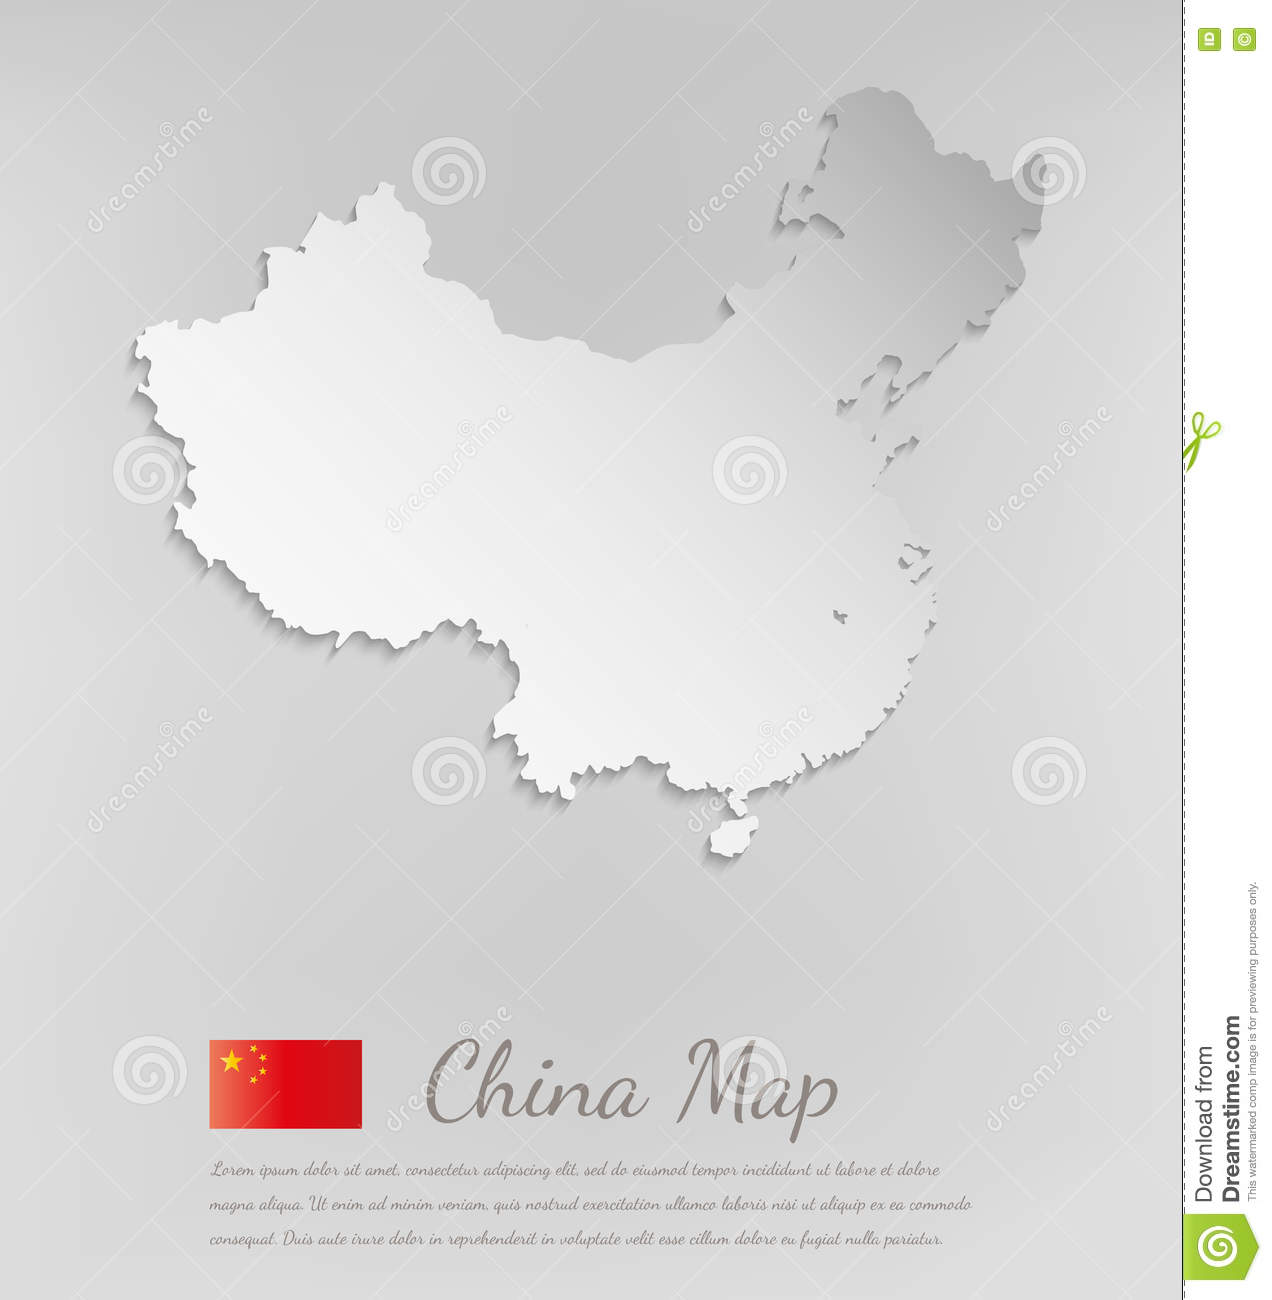 List of Chinese inventions